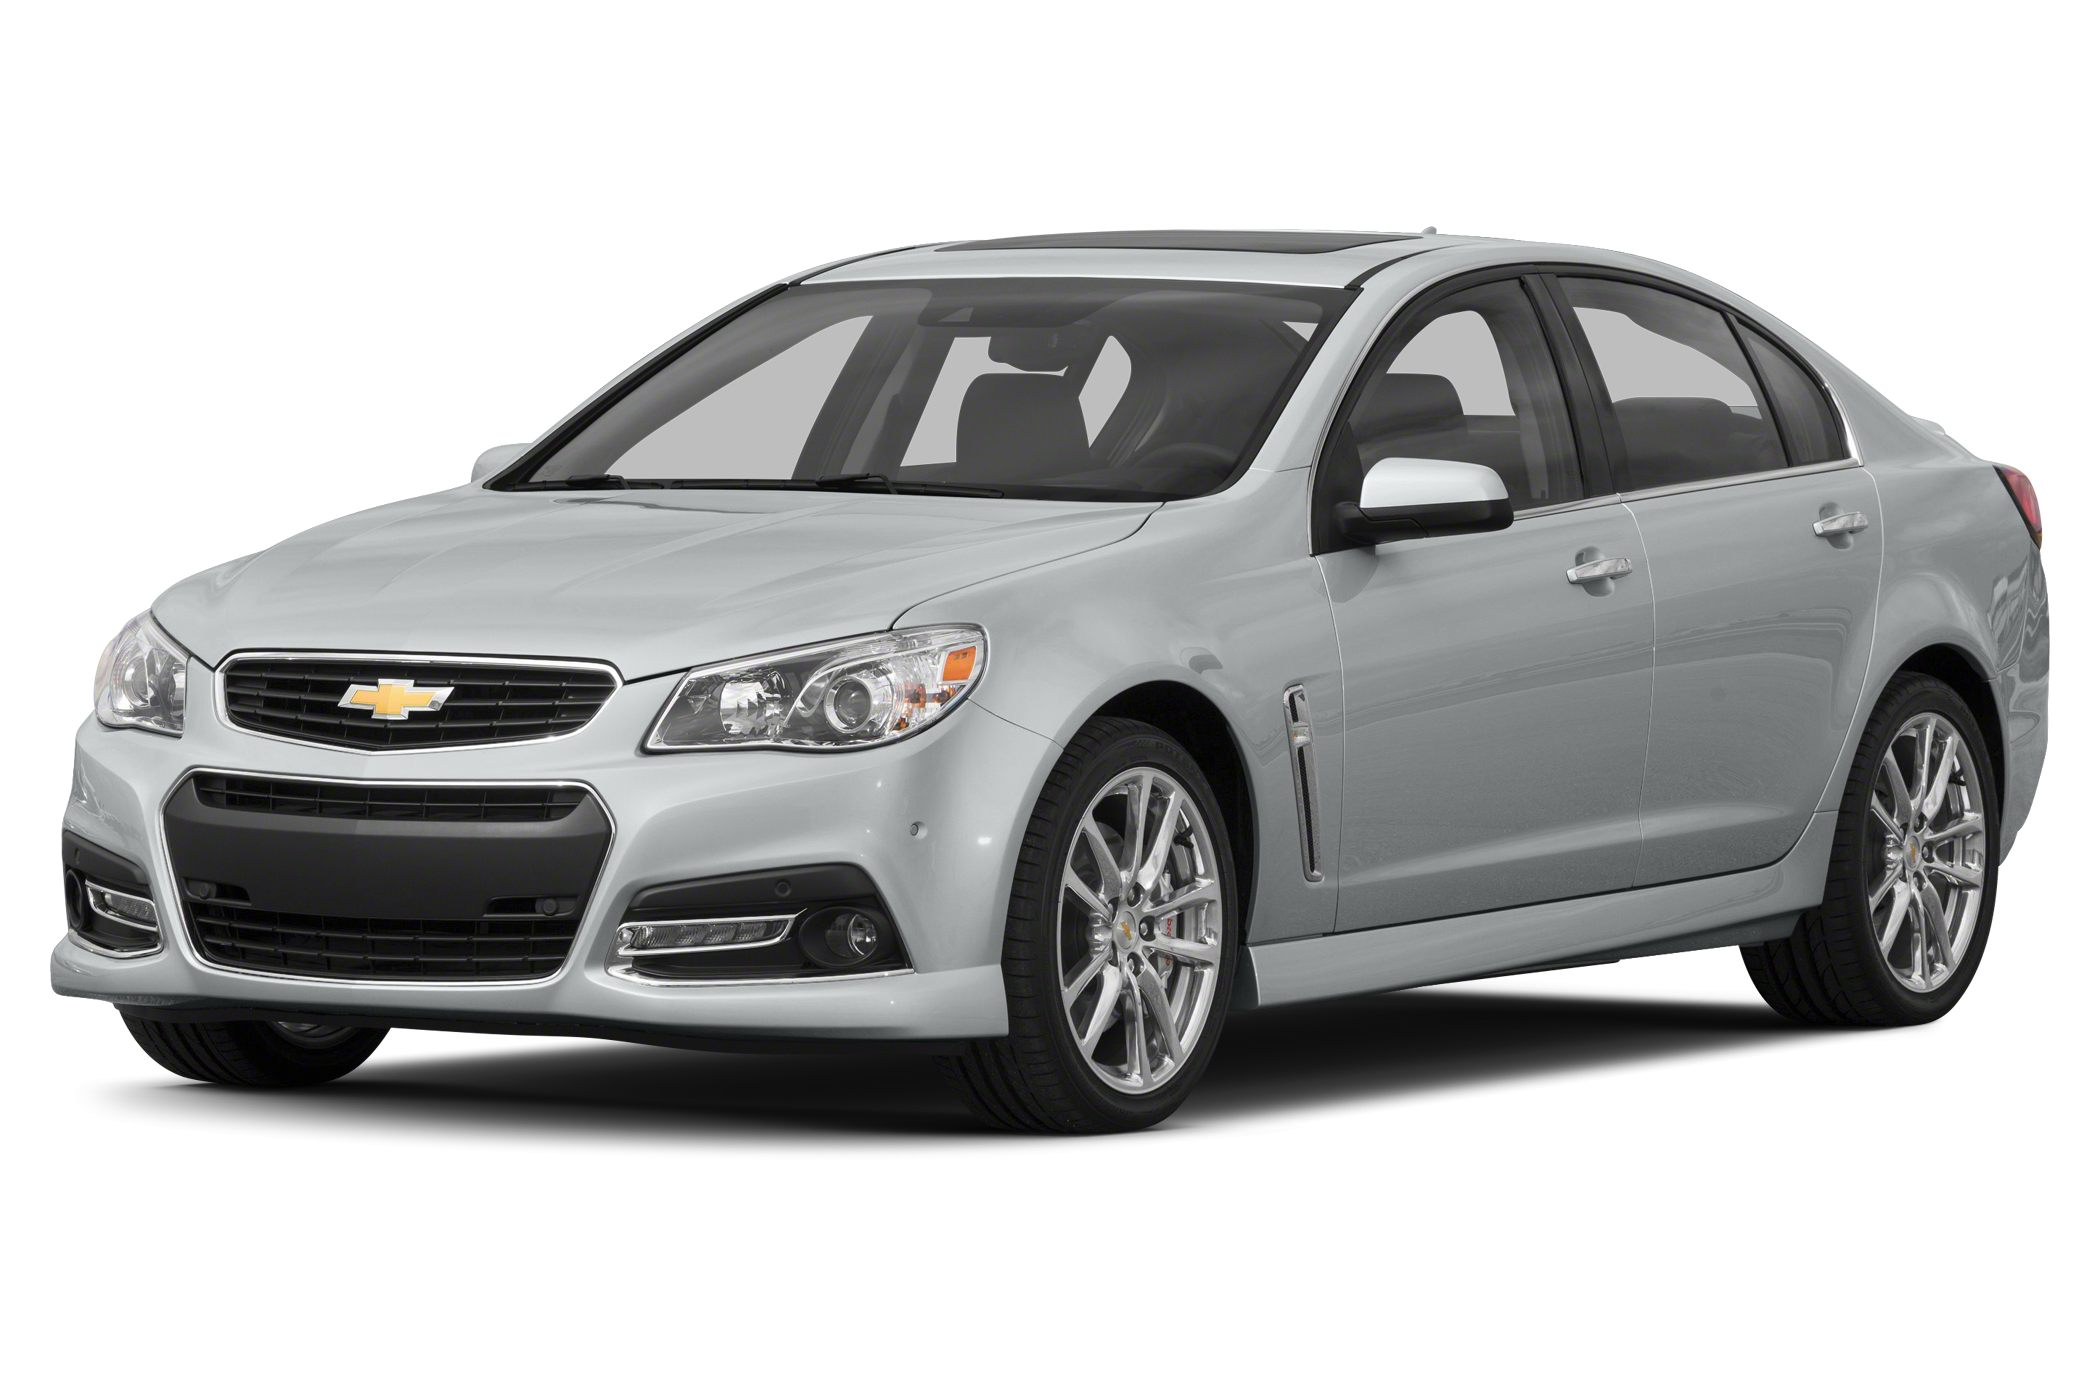 15 Chevy SS Font PNG Images